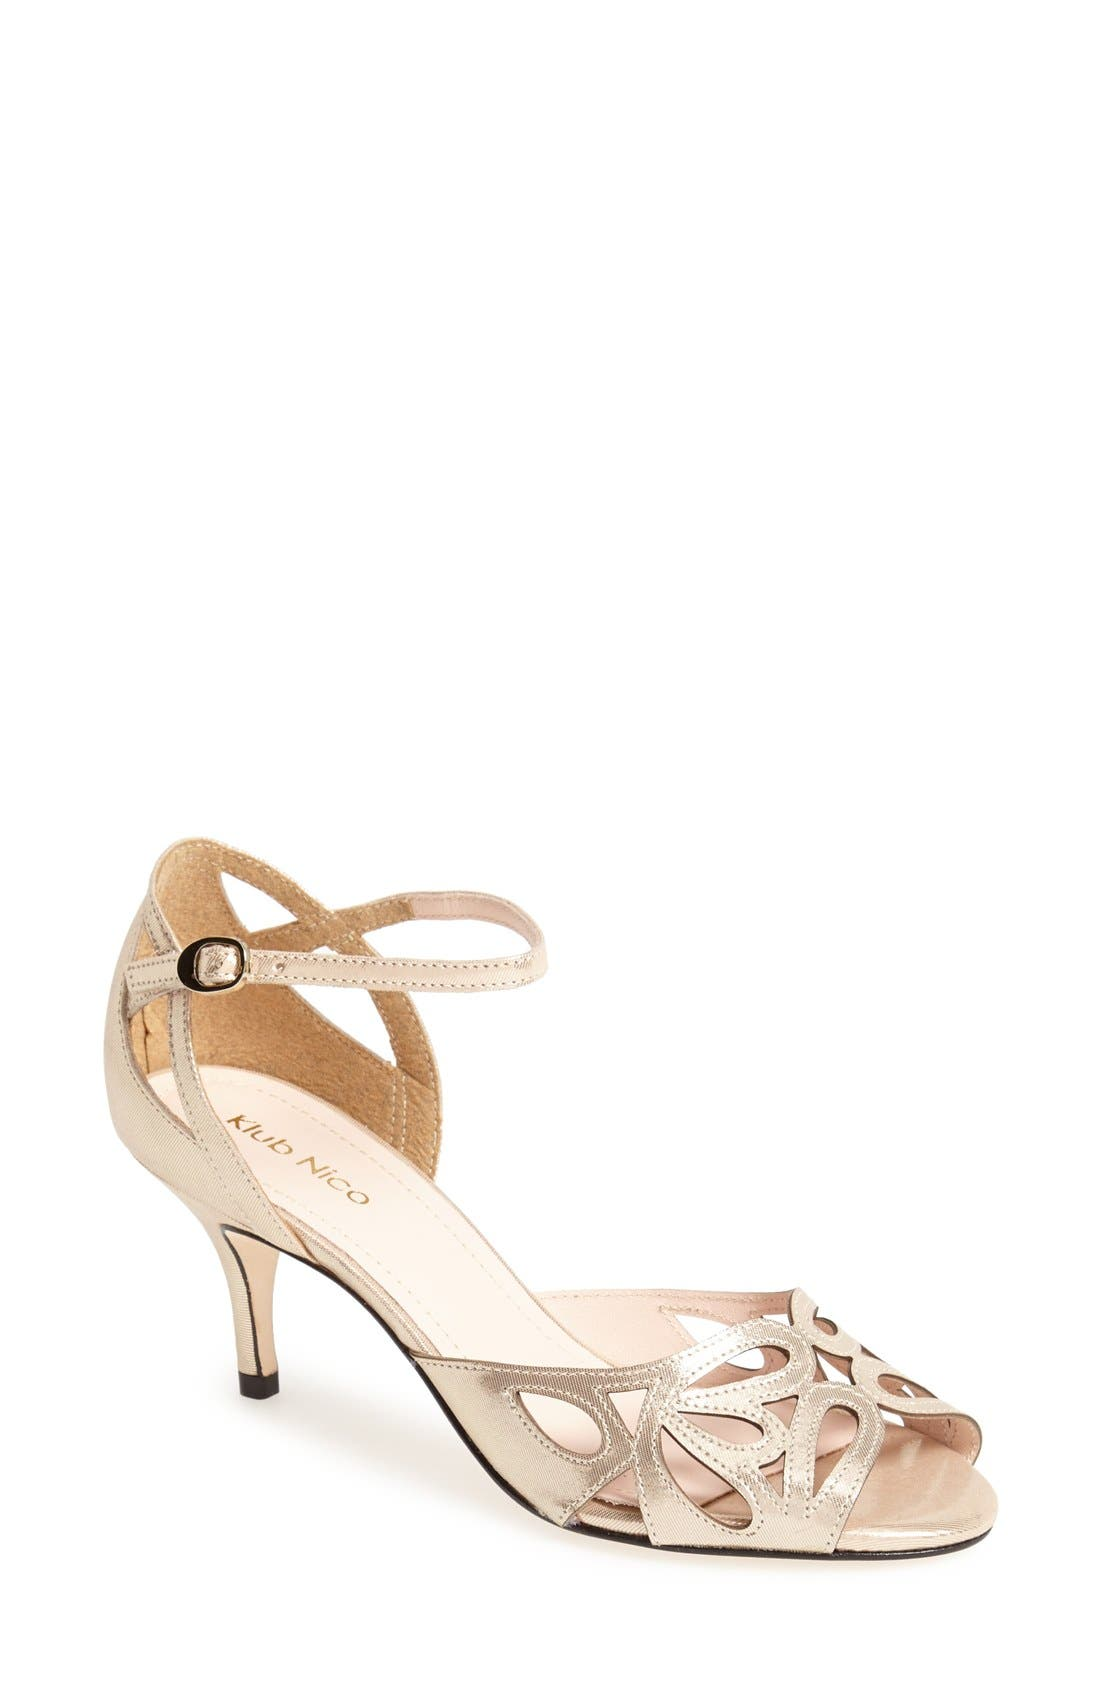 Alternate Image 1 Selected - Klub Nico 'Alysia' Ankle Strap Sandal (Women)